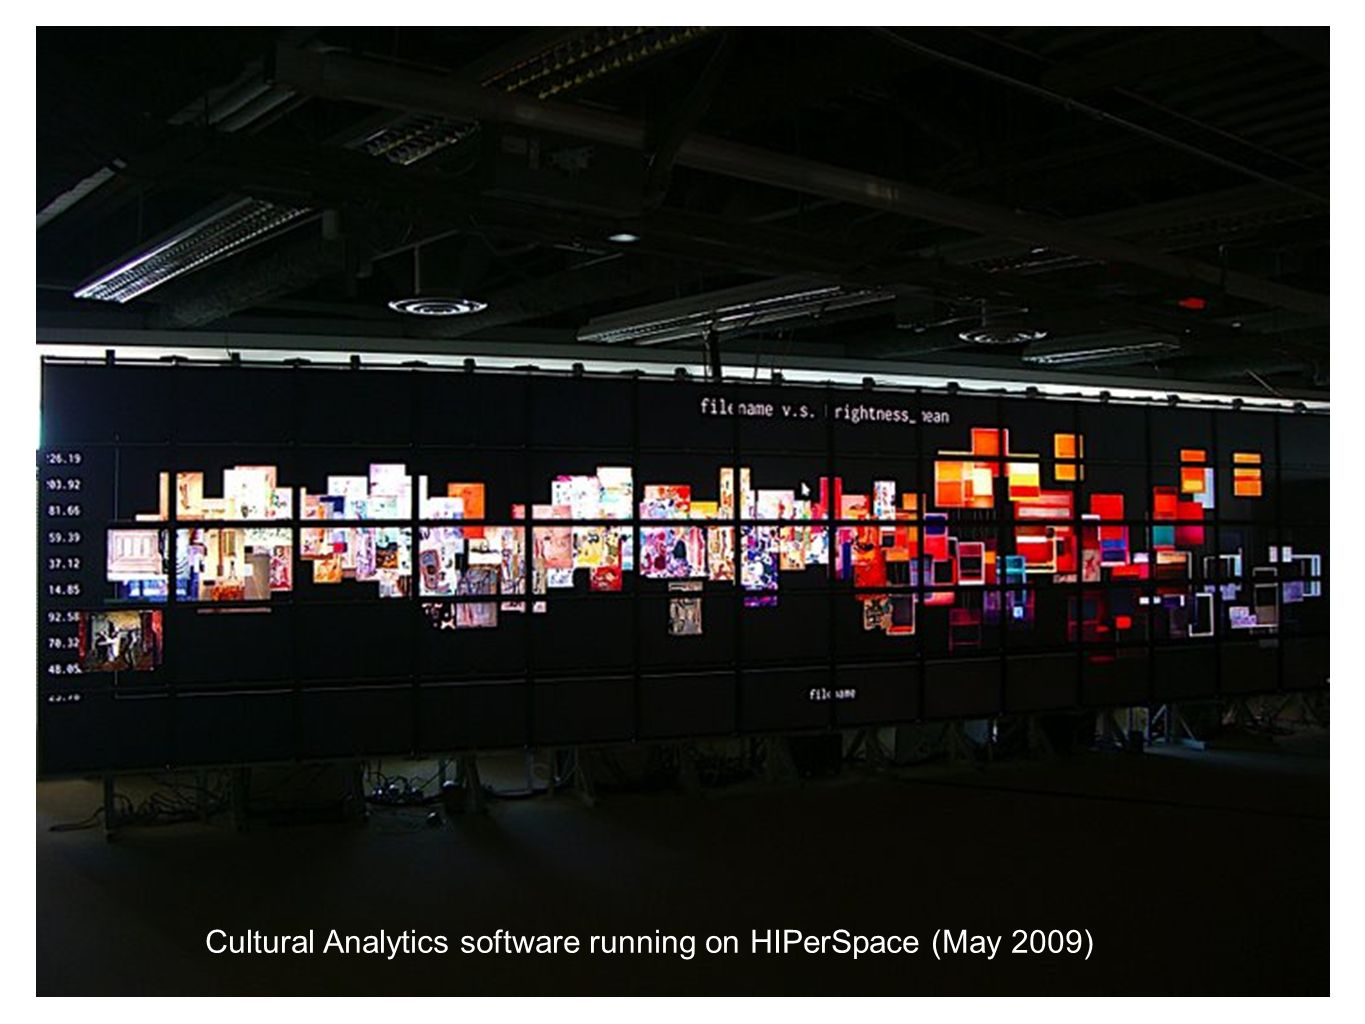 Cultural Analytics software running on HIPerSpace (May 2009)